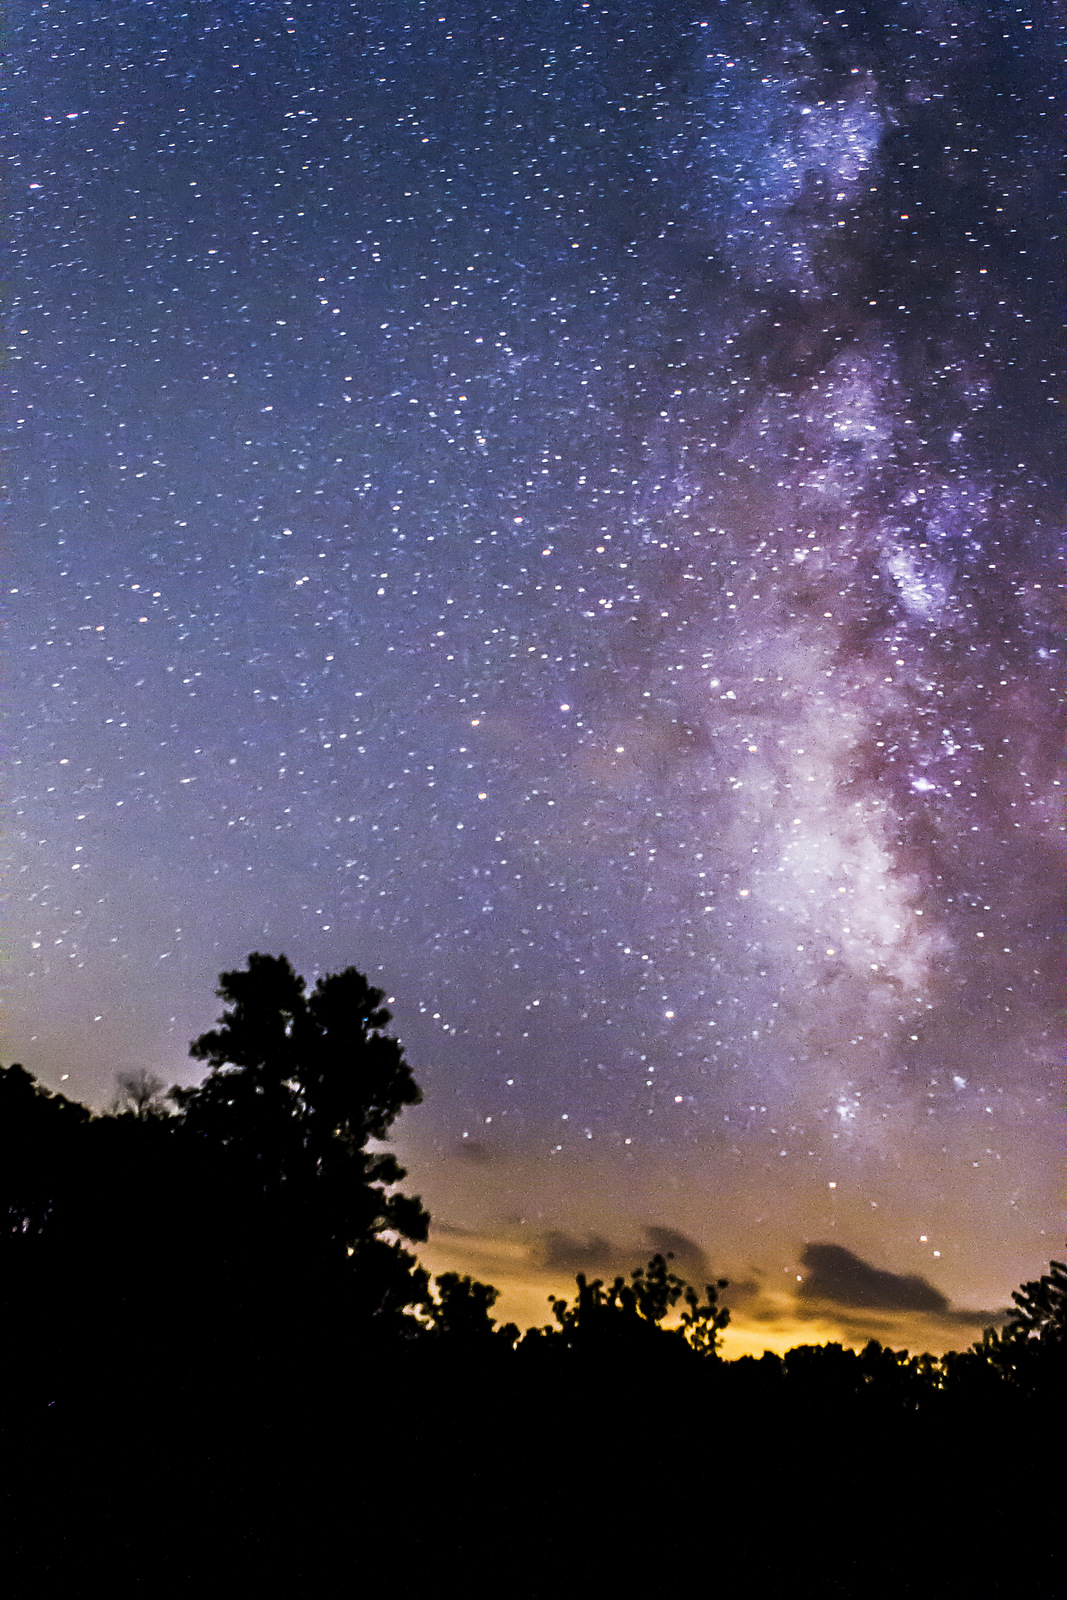 Take pictures of the milky way galaxy without telescope you can still see from this park